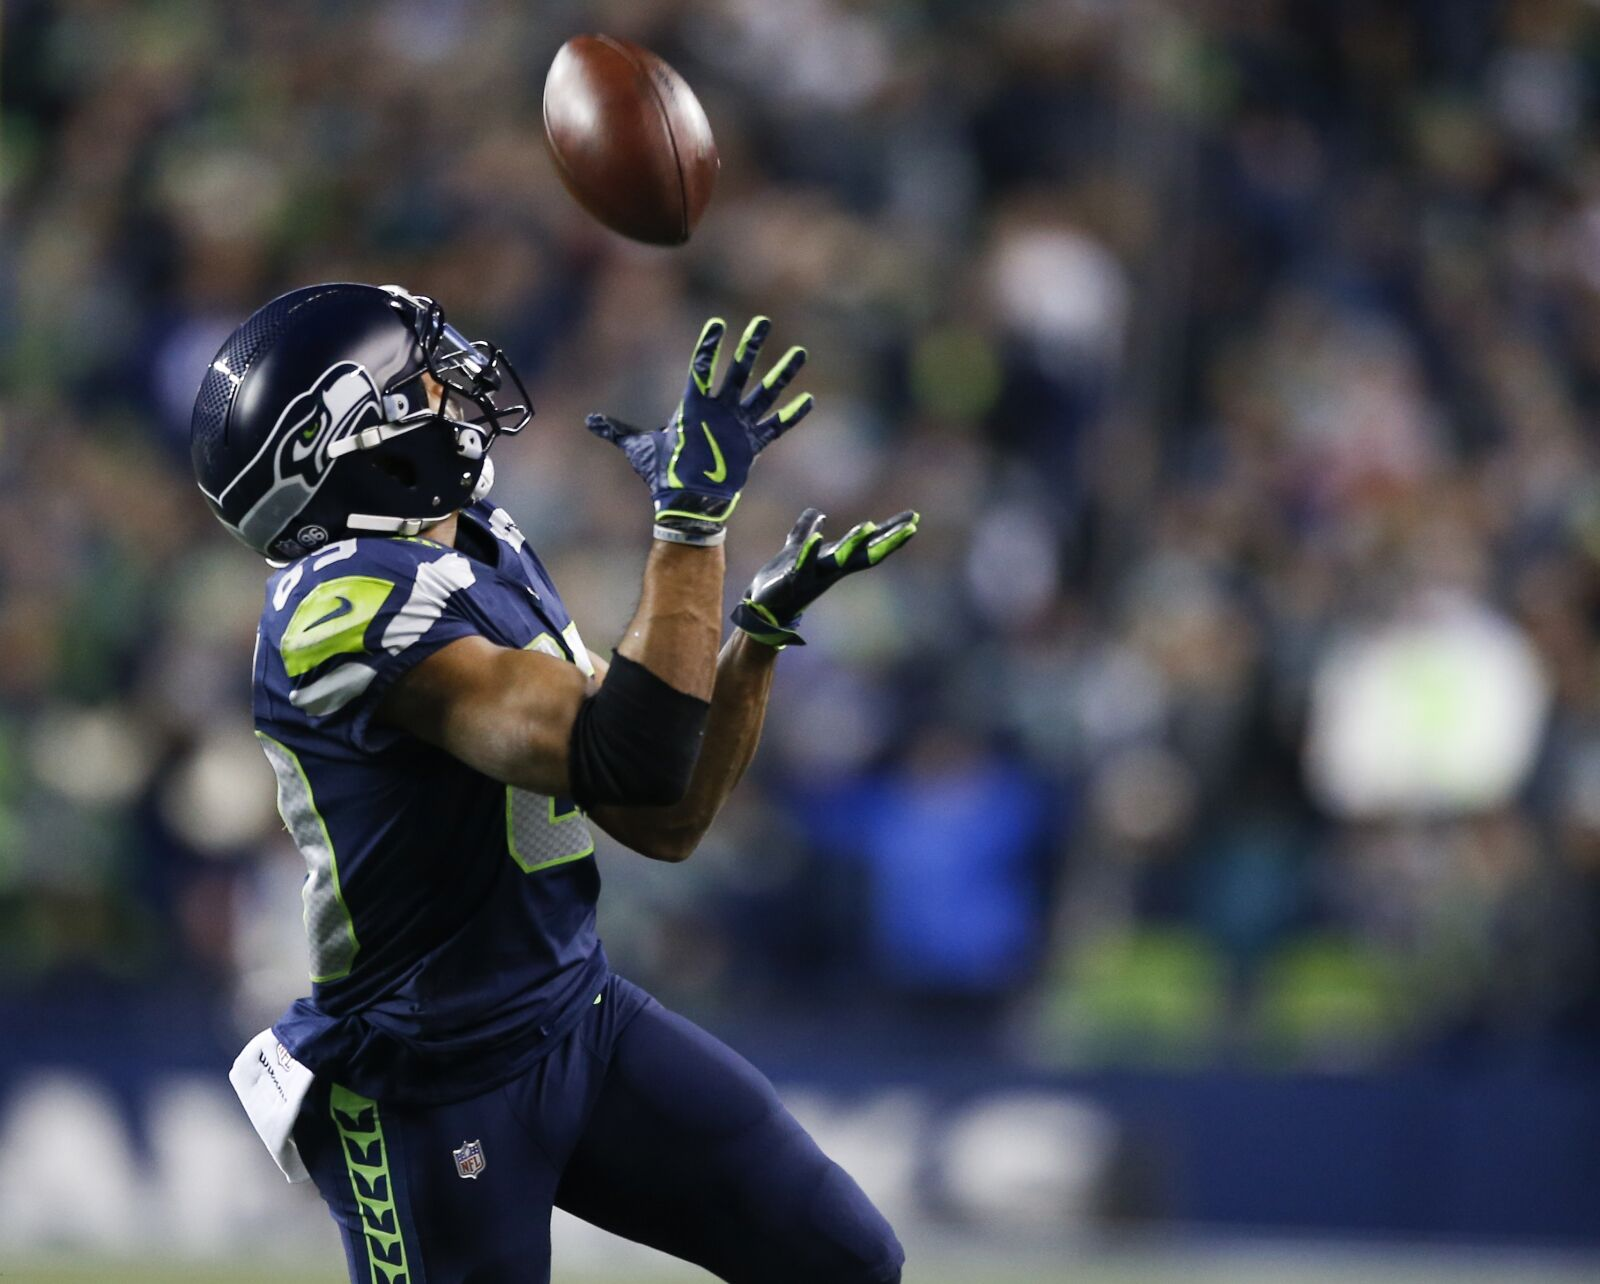 Seahawks may need to find successor to Doug Baldwin sooner than later 4290c1686